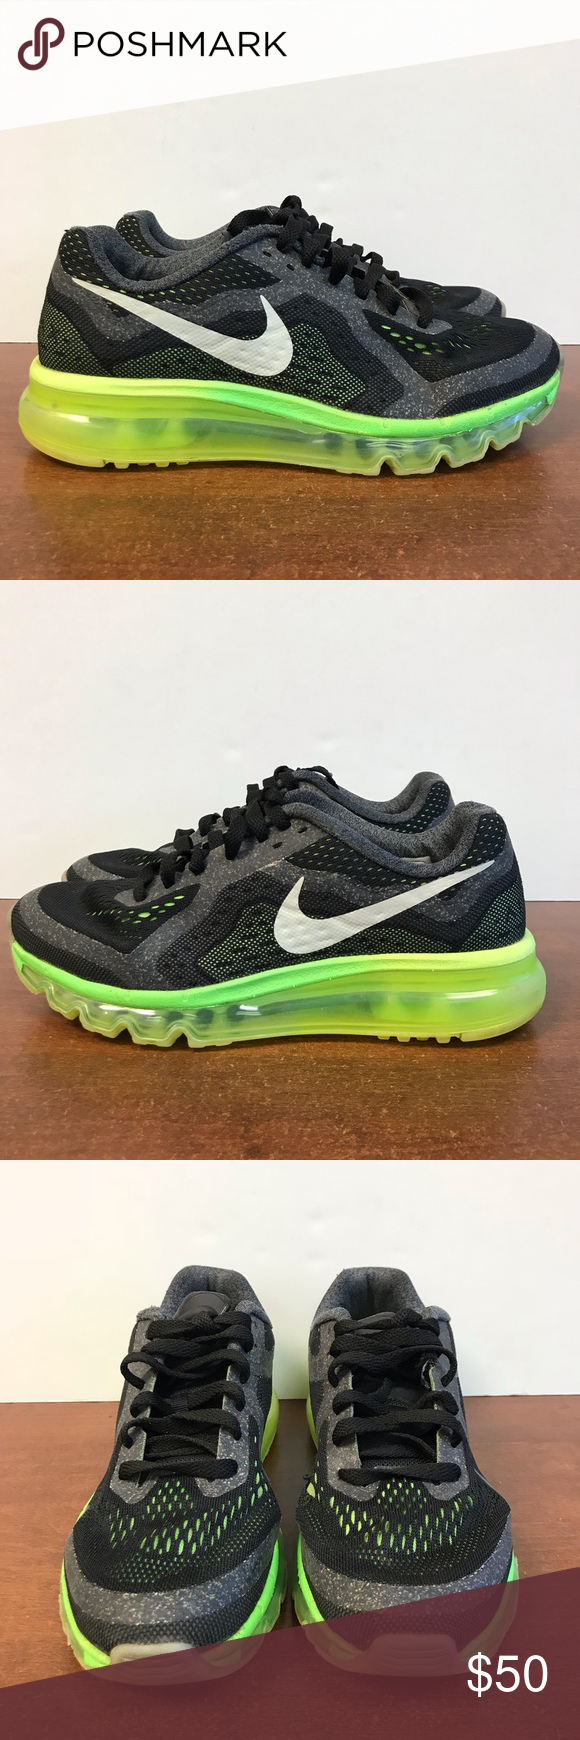 quality design a4aa1 fbe33 Nike Air Max 2014 GS Glow. Size Y6 or W7.5 Preowned Nike Air Max 2014 GS  Glow in the dark. Size 6 Youth or 7.5 Women s Nike Shoes Athletic Shoes